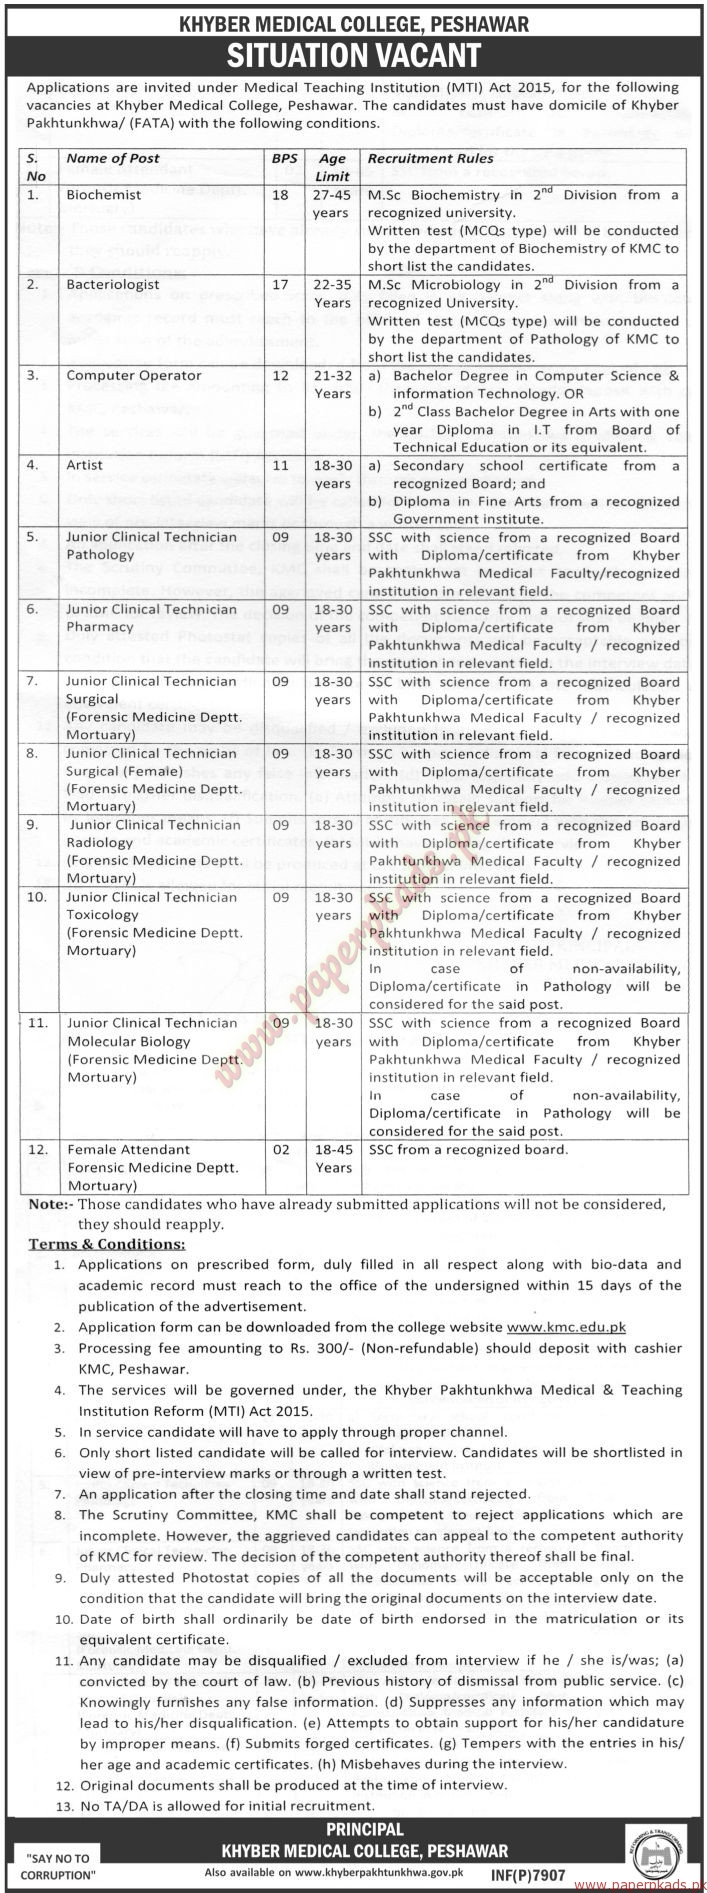 Khyber Medical College Jobs - The News Jobs ads 01 January 2017